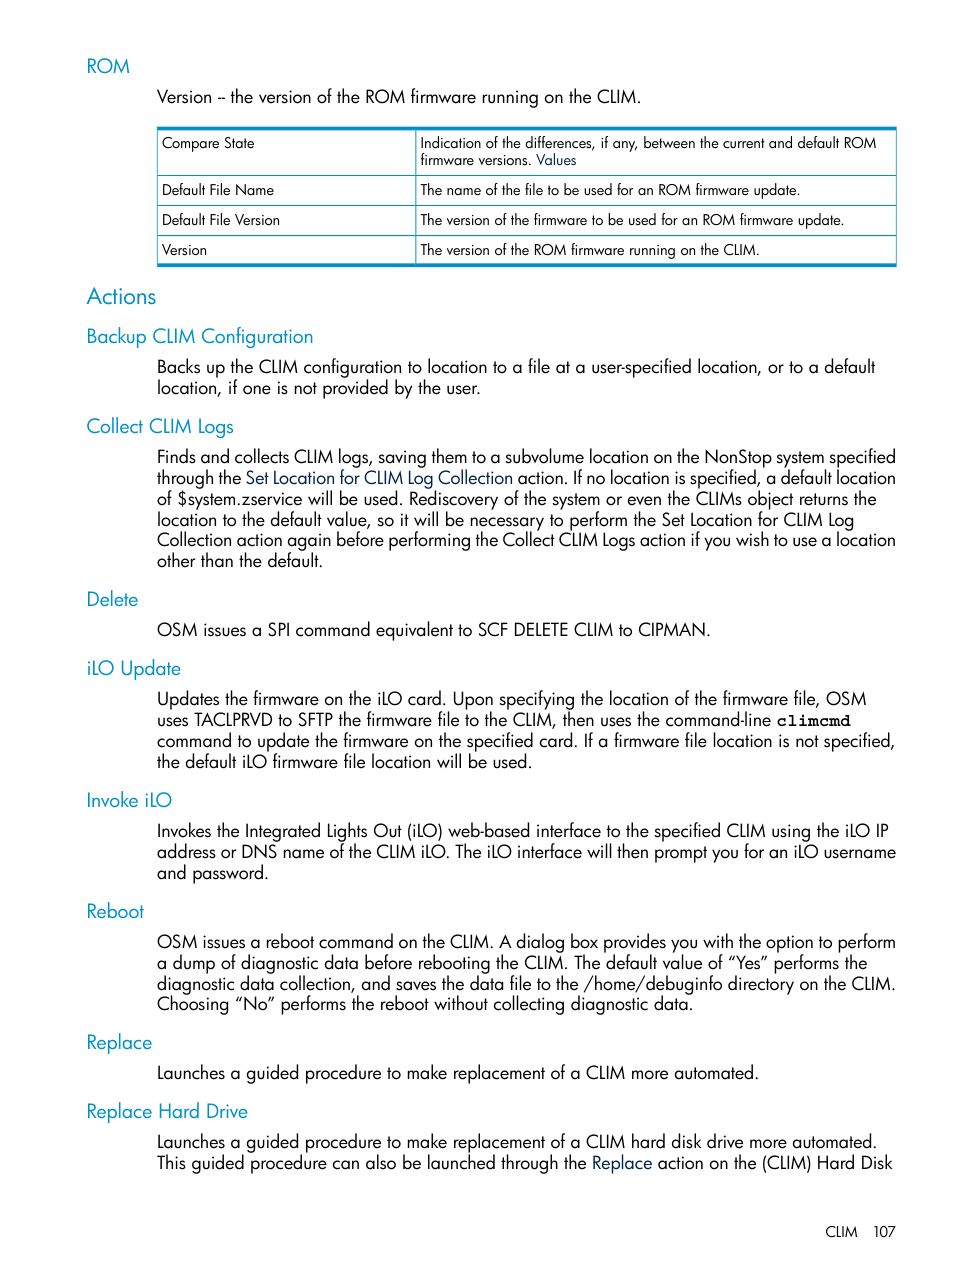 Actions, Backup clim configuration, Collect clim logs | HP